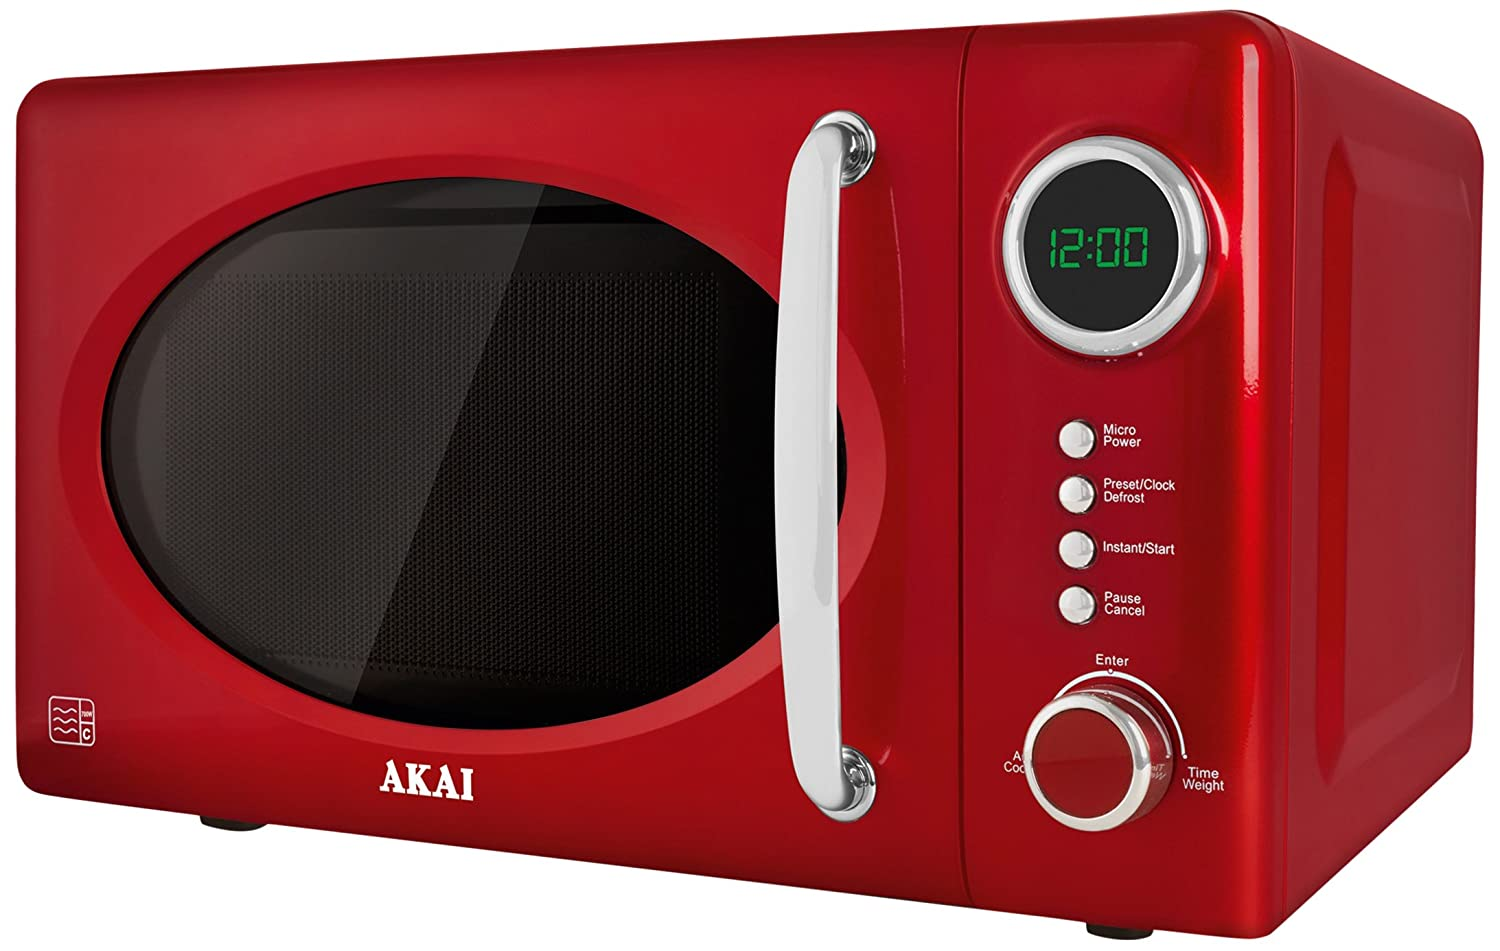 Akai A24009 Digital Solo Microwave with 5 Power Levels, 700 W, 20 Litre, Metallic Red